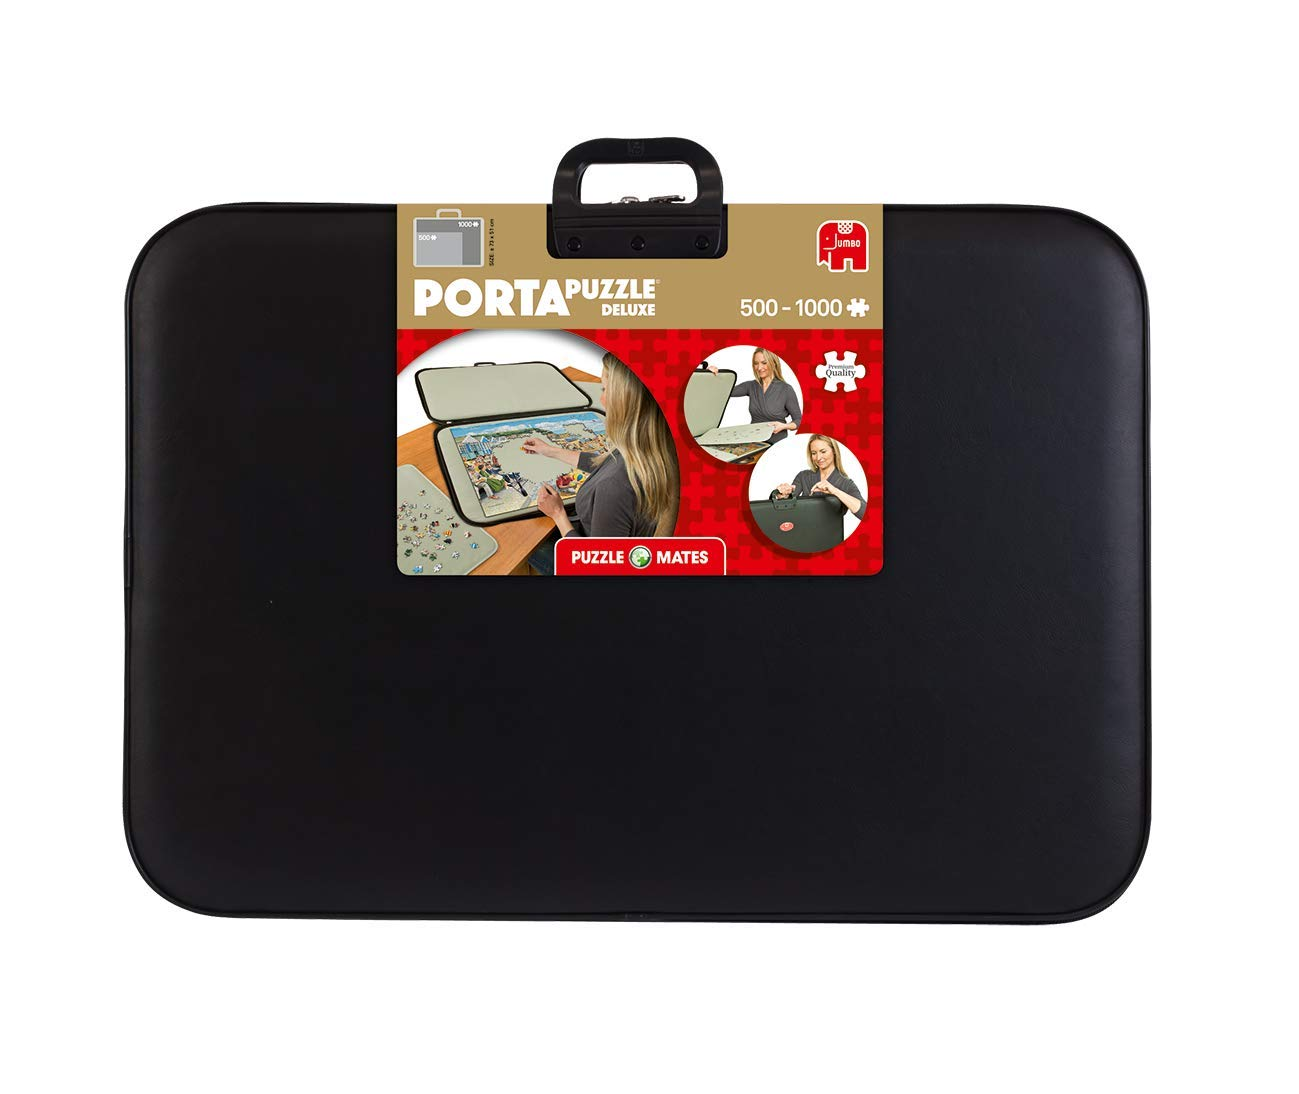 Portapuzzle Deluxe 1000 (Jigsaw Puzzle Accessory) by Jumbo